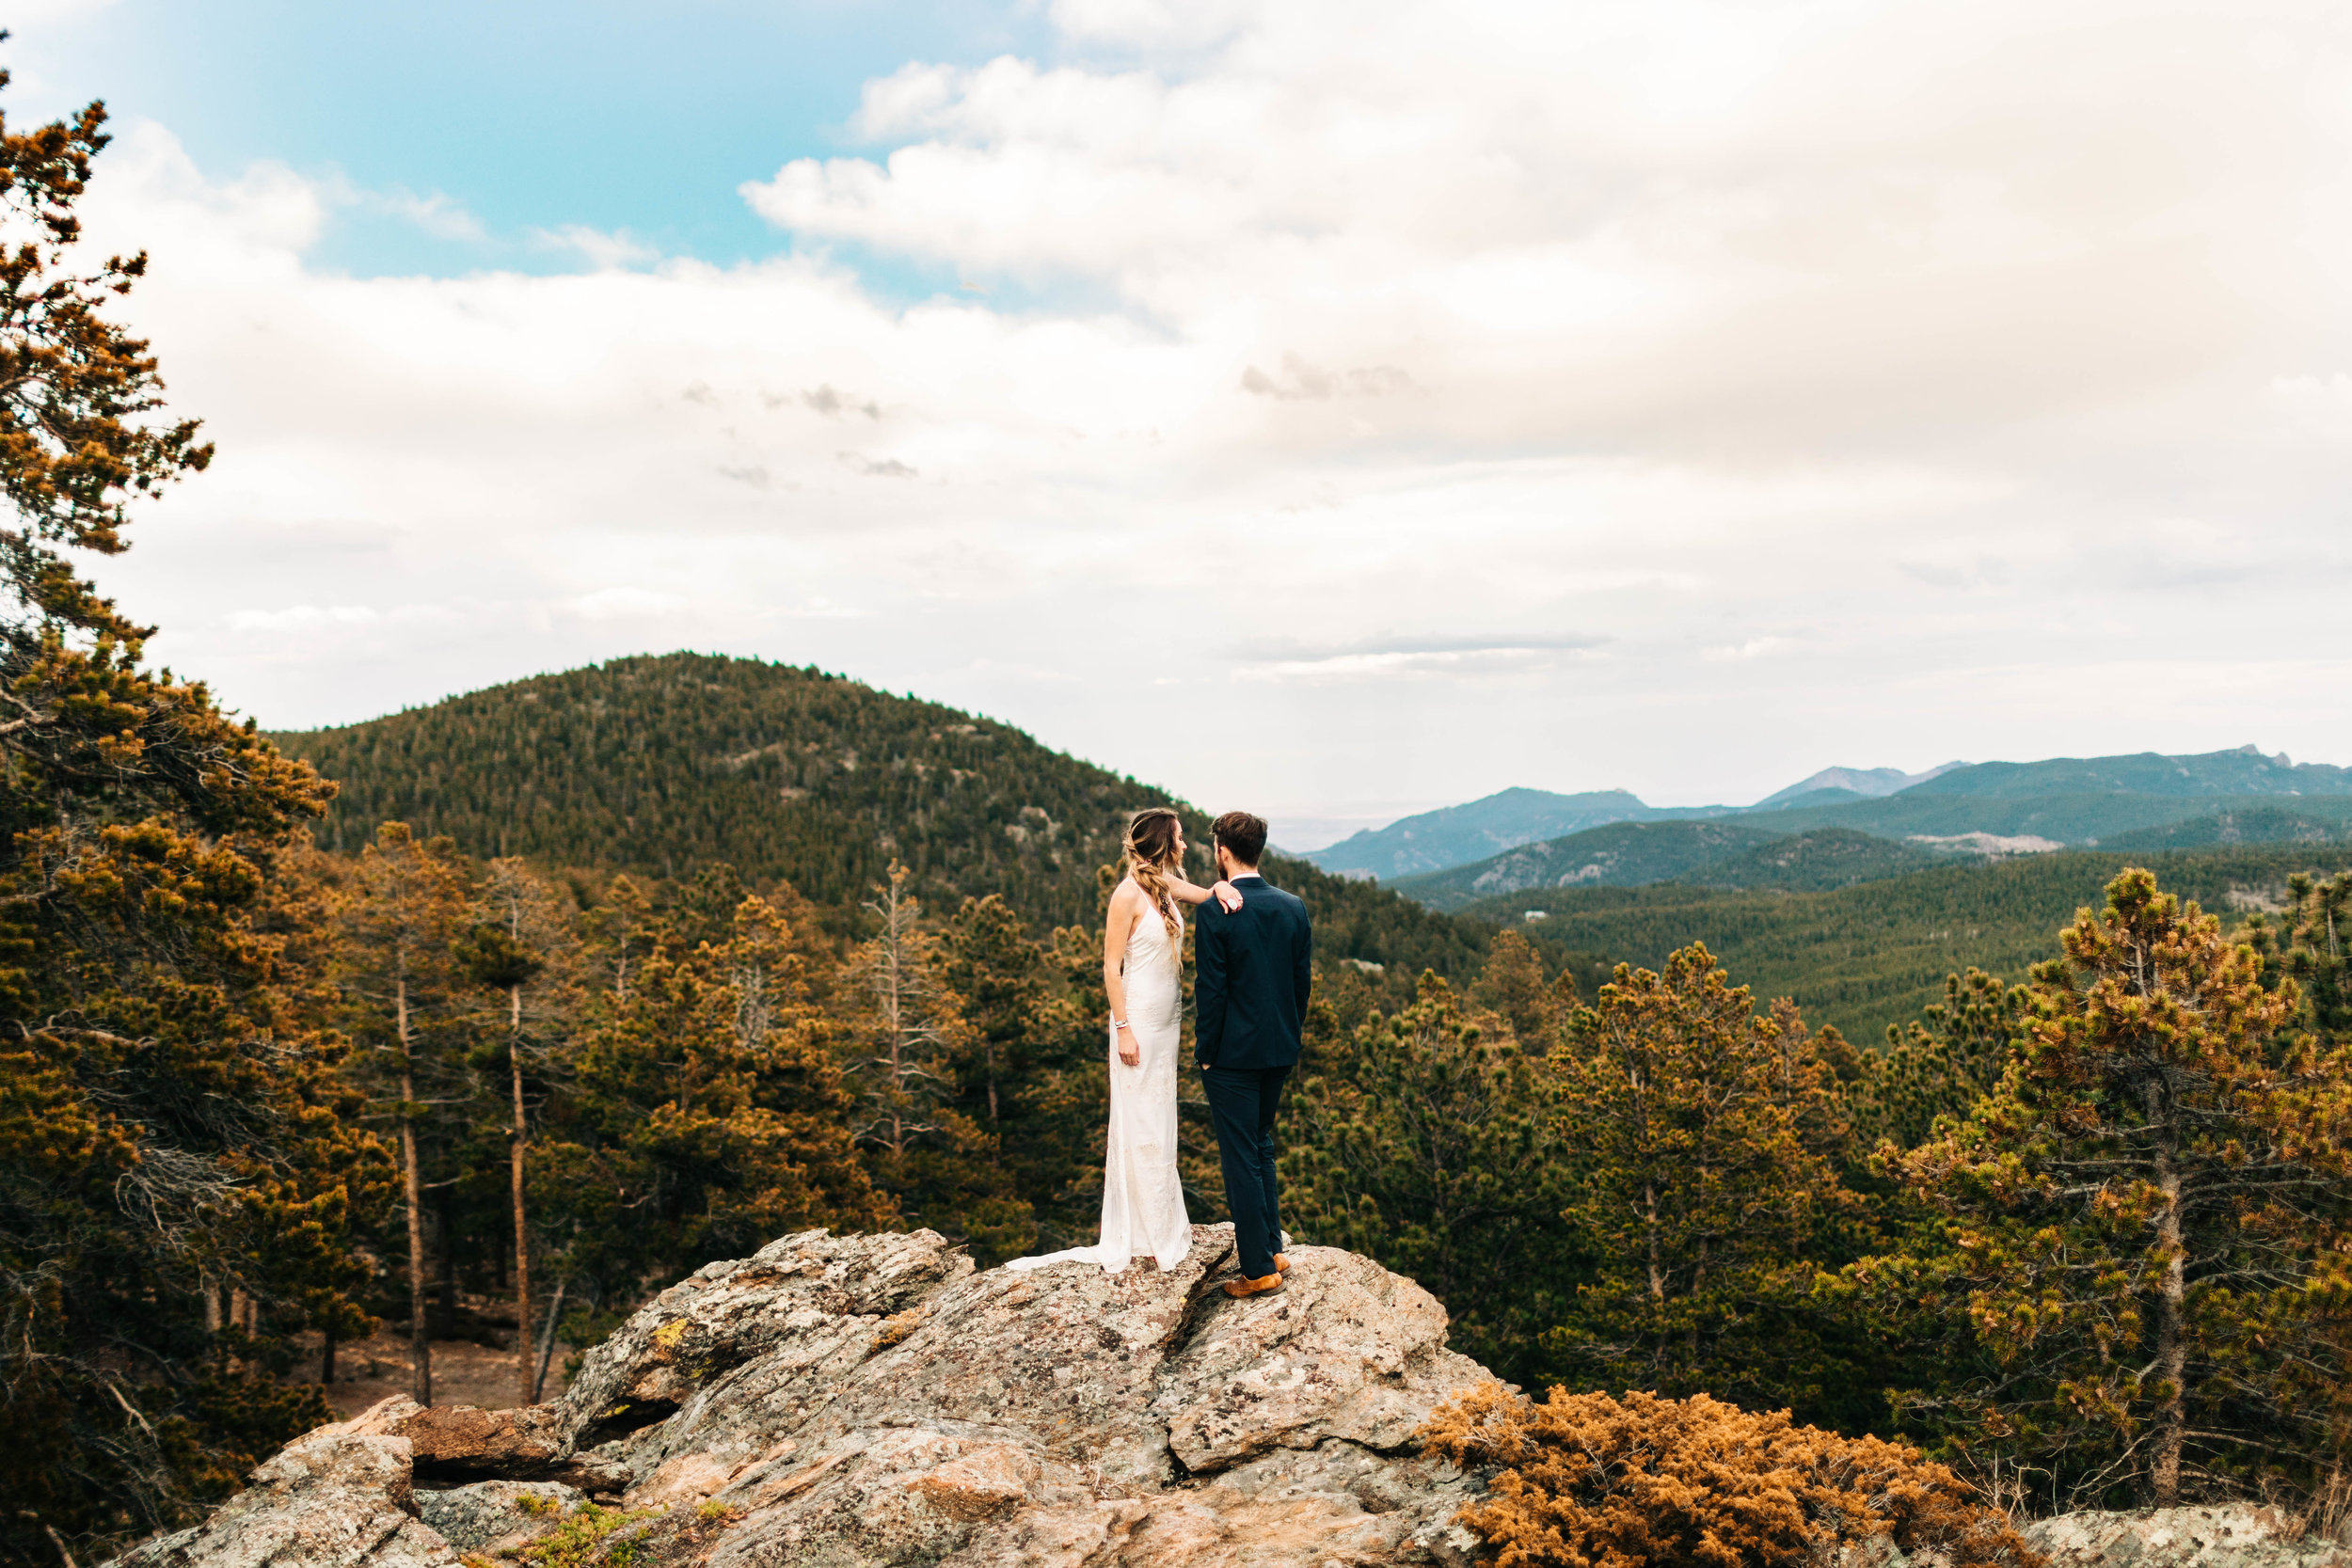 epic Colorado elopement photos on the edge of a mountain | adventure elopement photographers